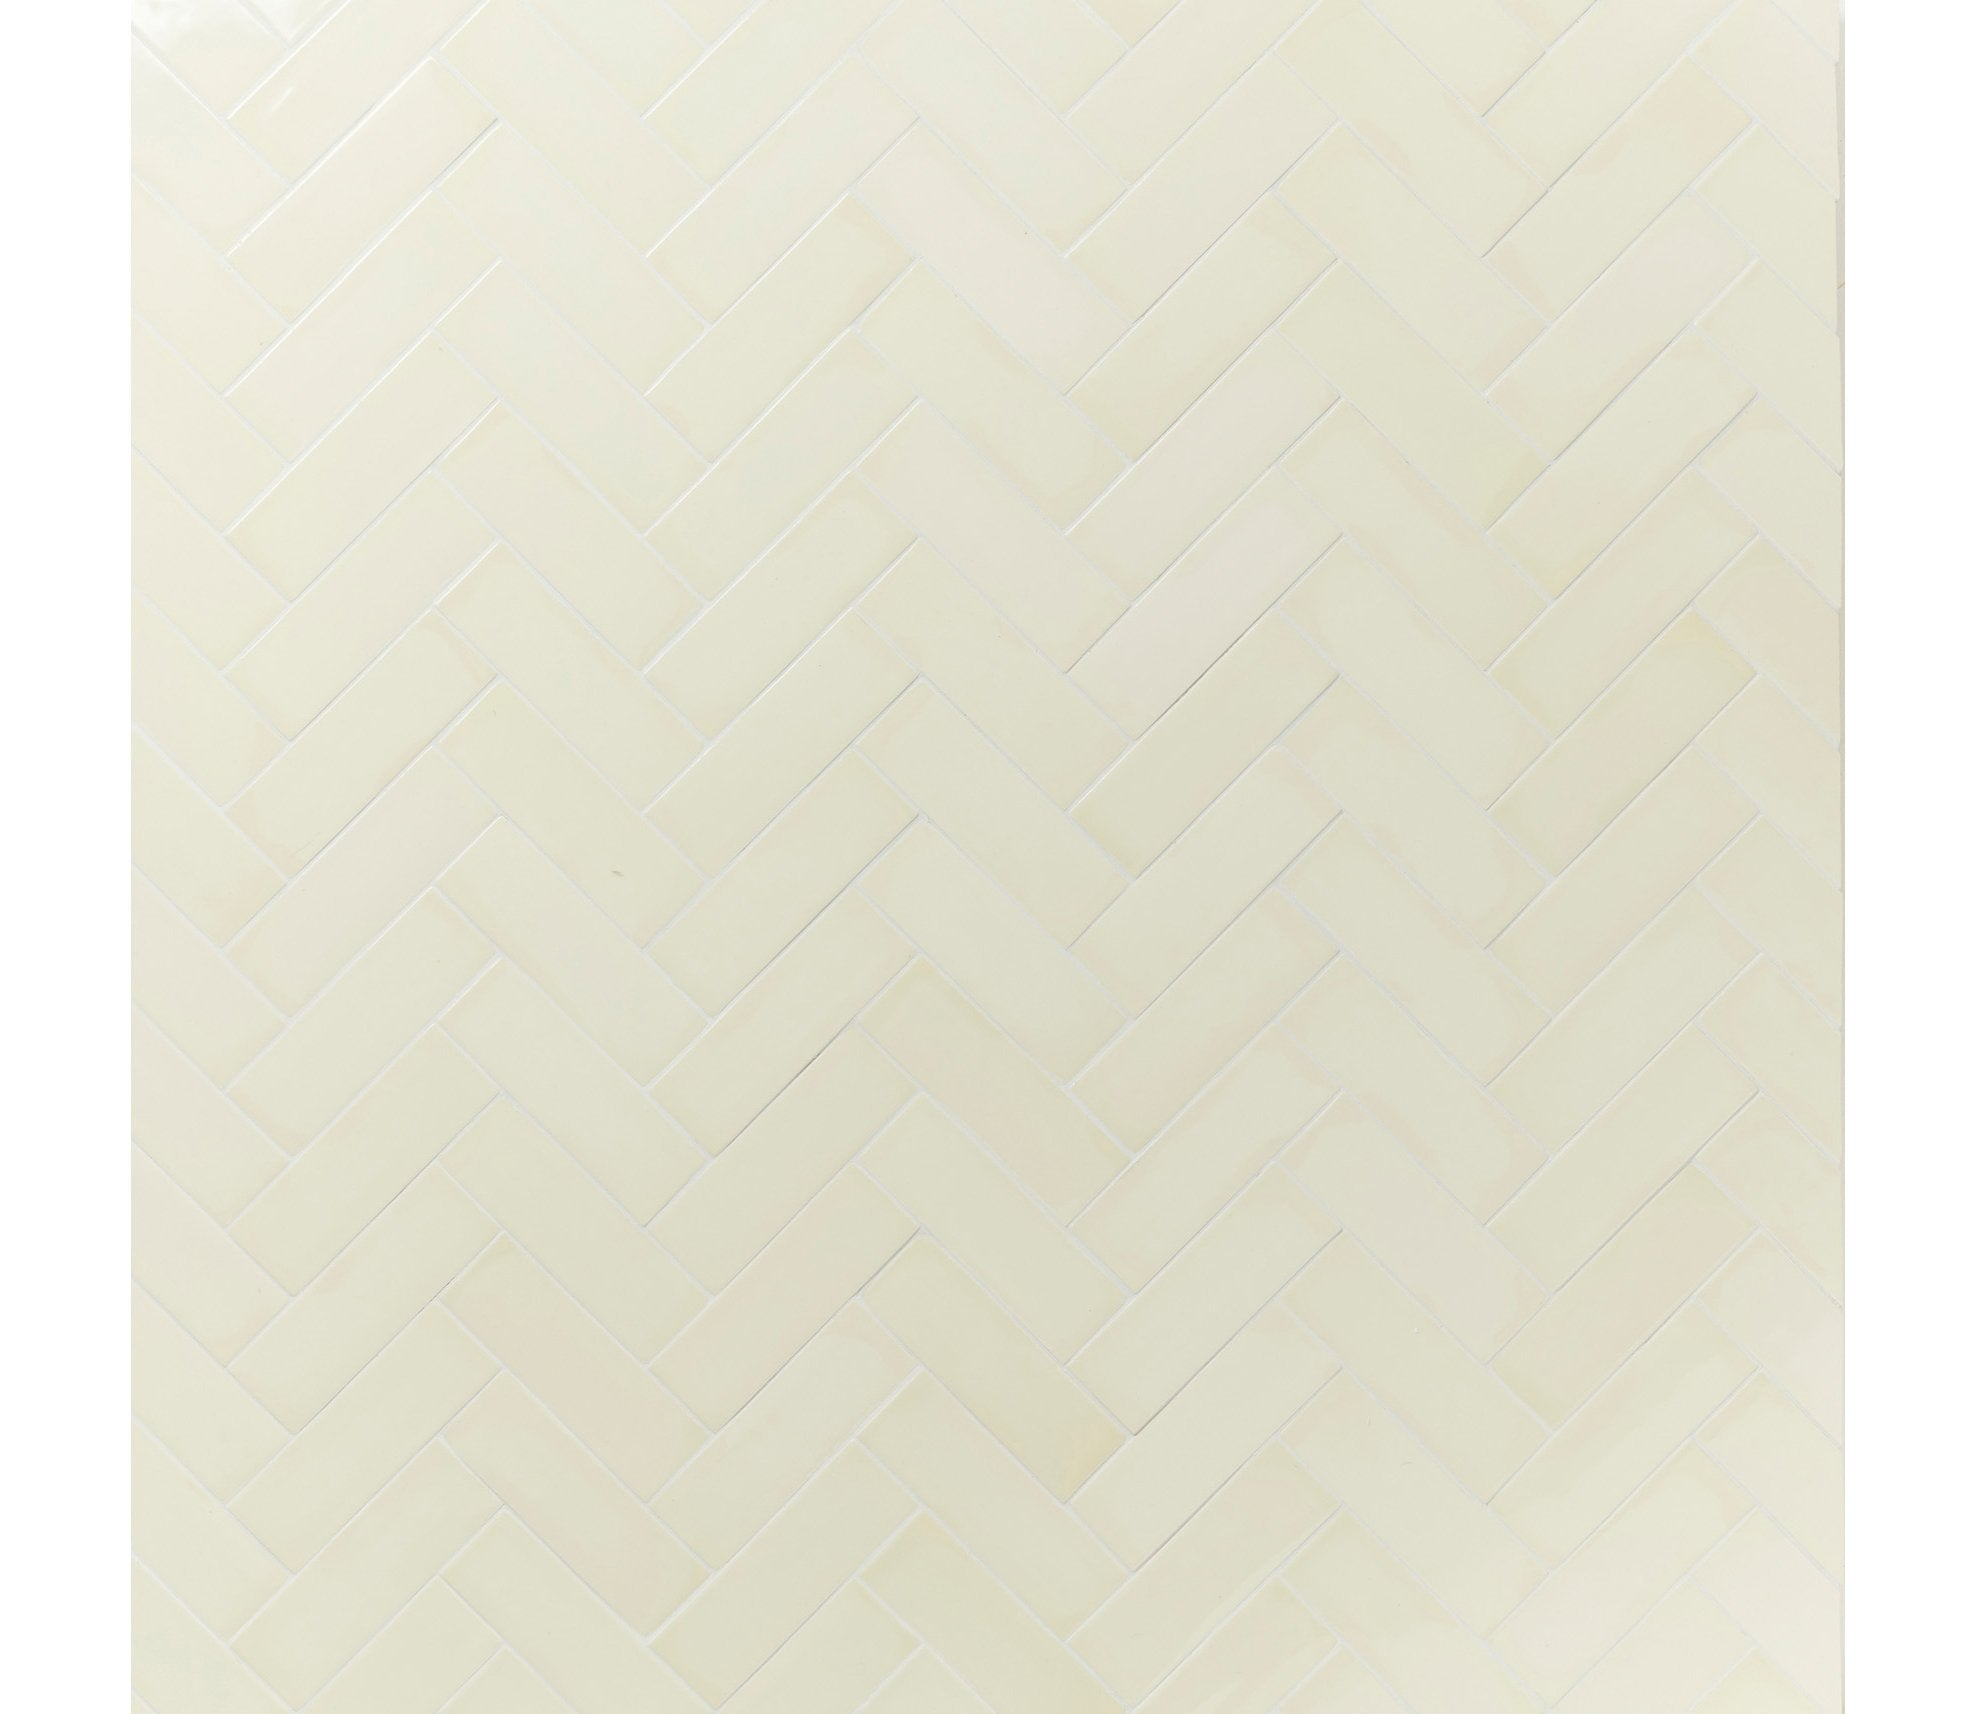 Hanley Traditional Tiles Product Image 24